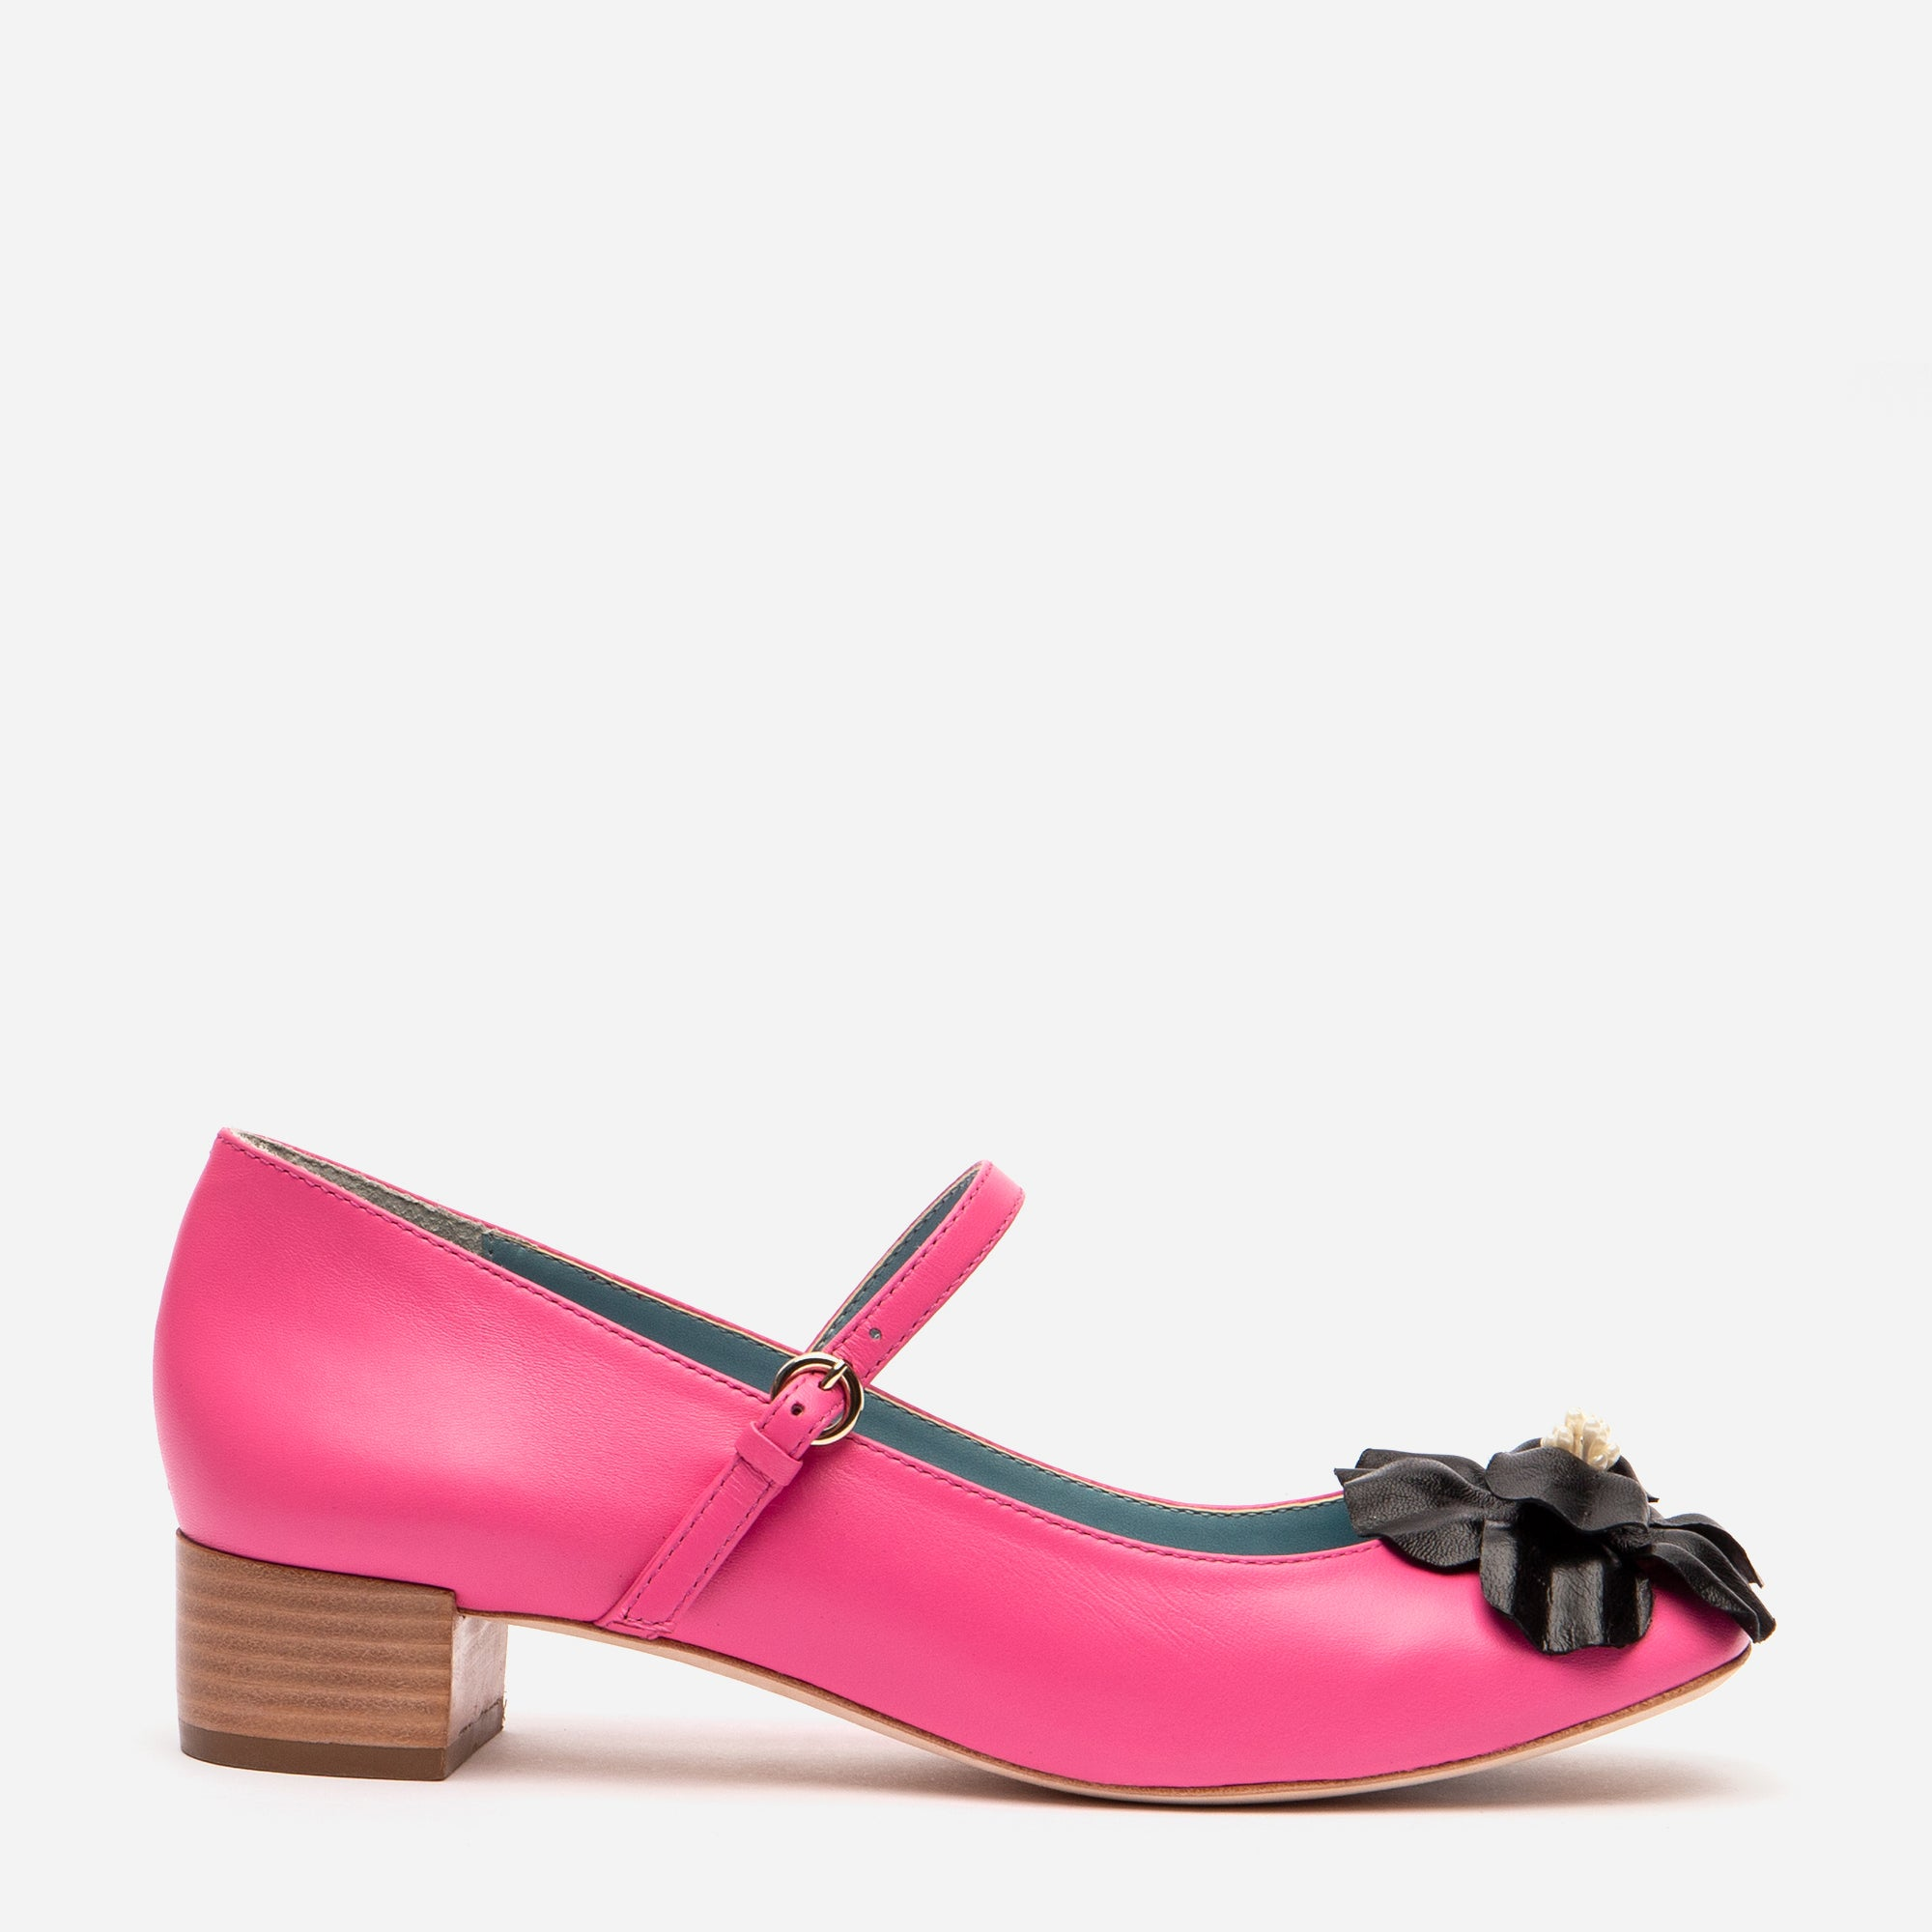 Babe Mary Jane Heels Pink Black